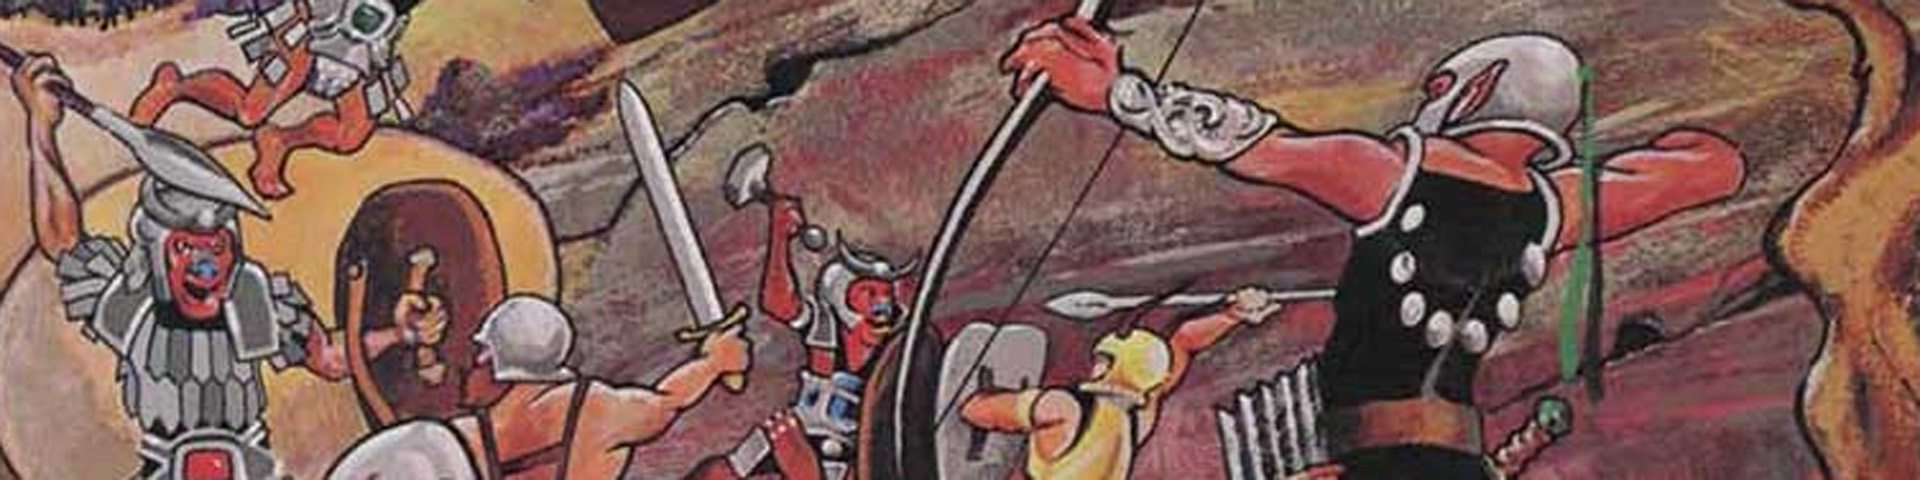 A close up view of adventurers fighting goblins.